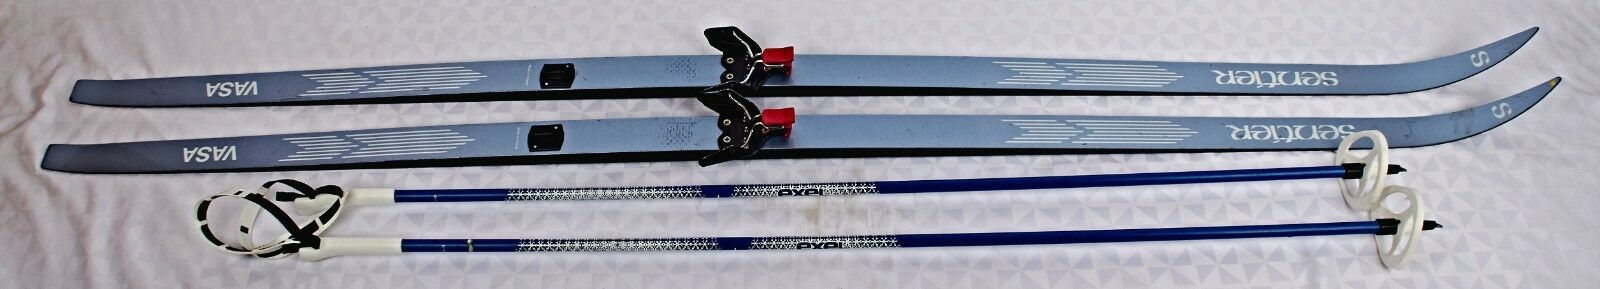 Sentier VASA SKI 190 cm with Bindings,Poles 135cm   sales online